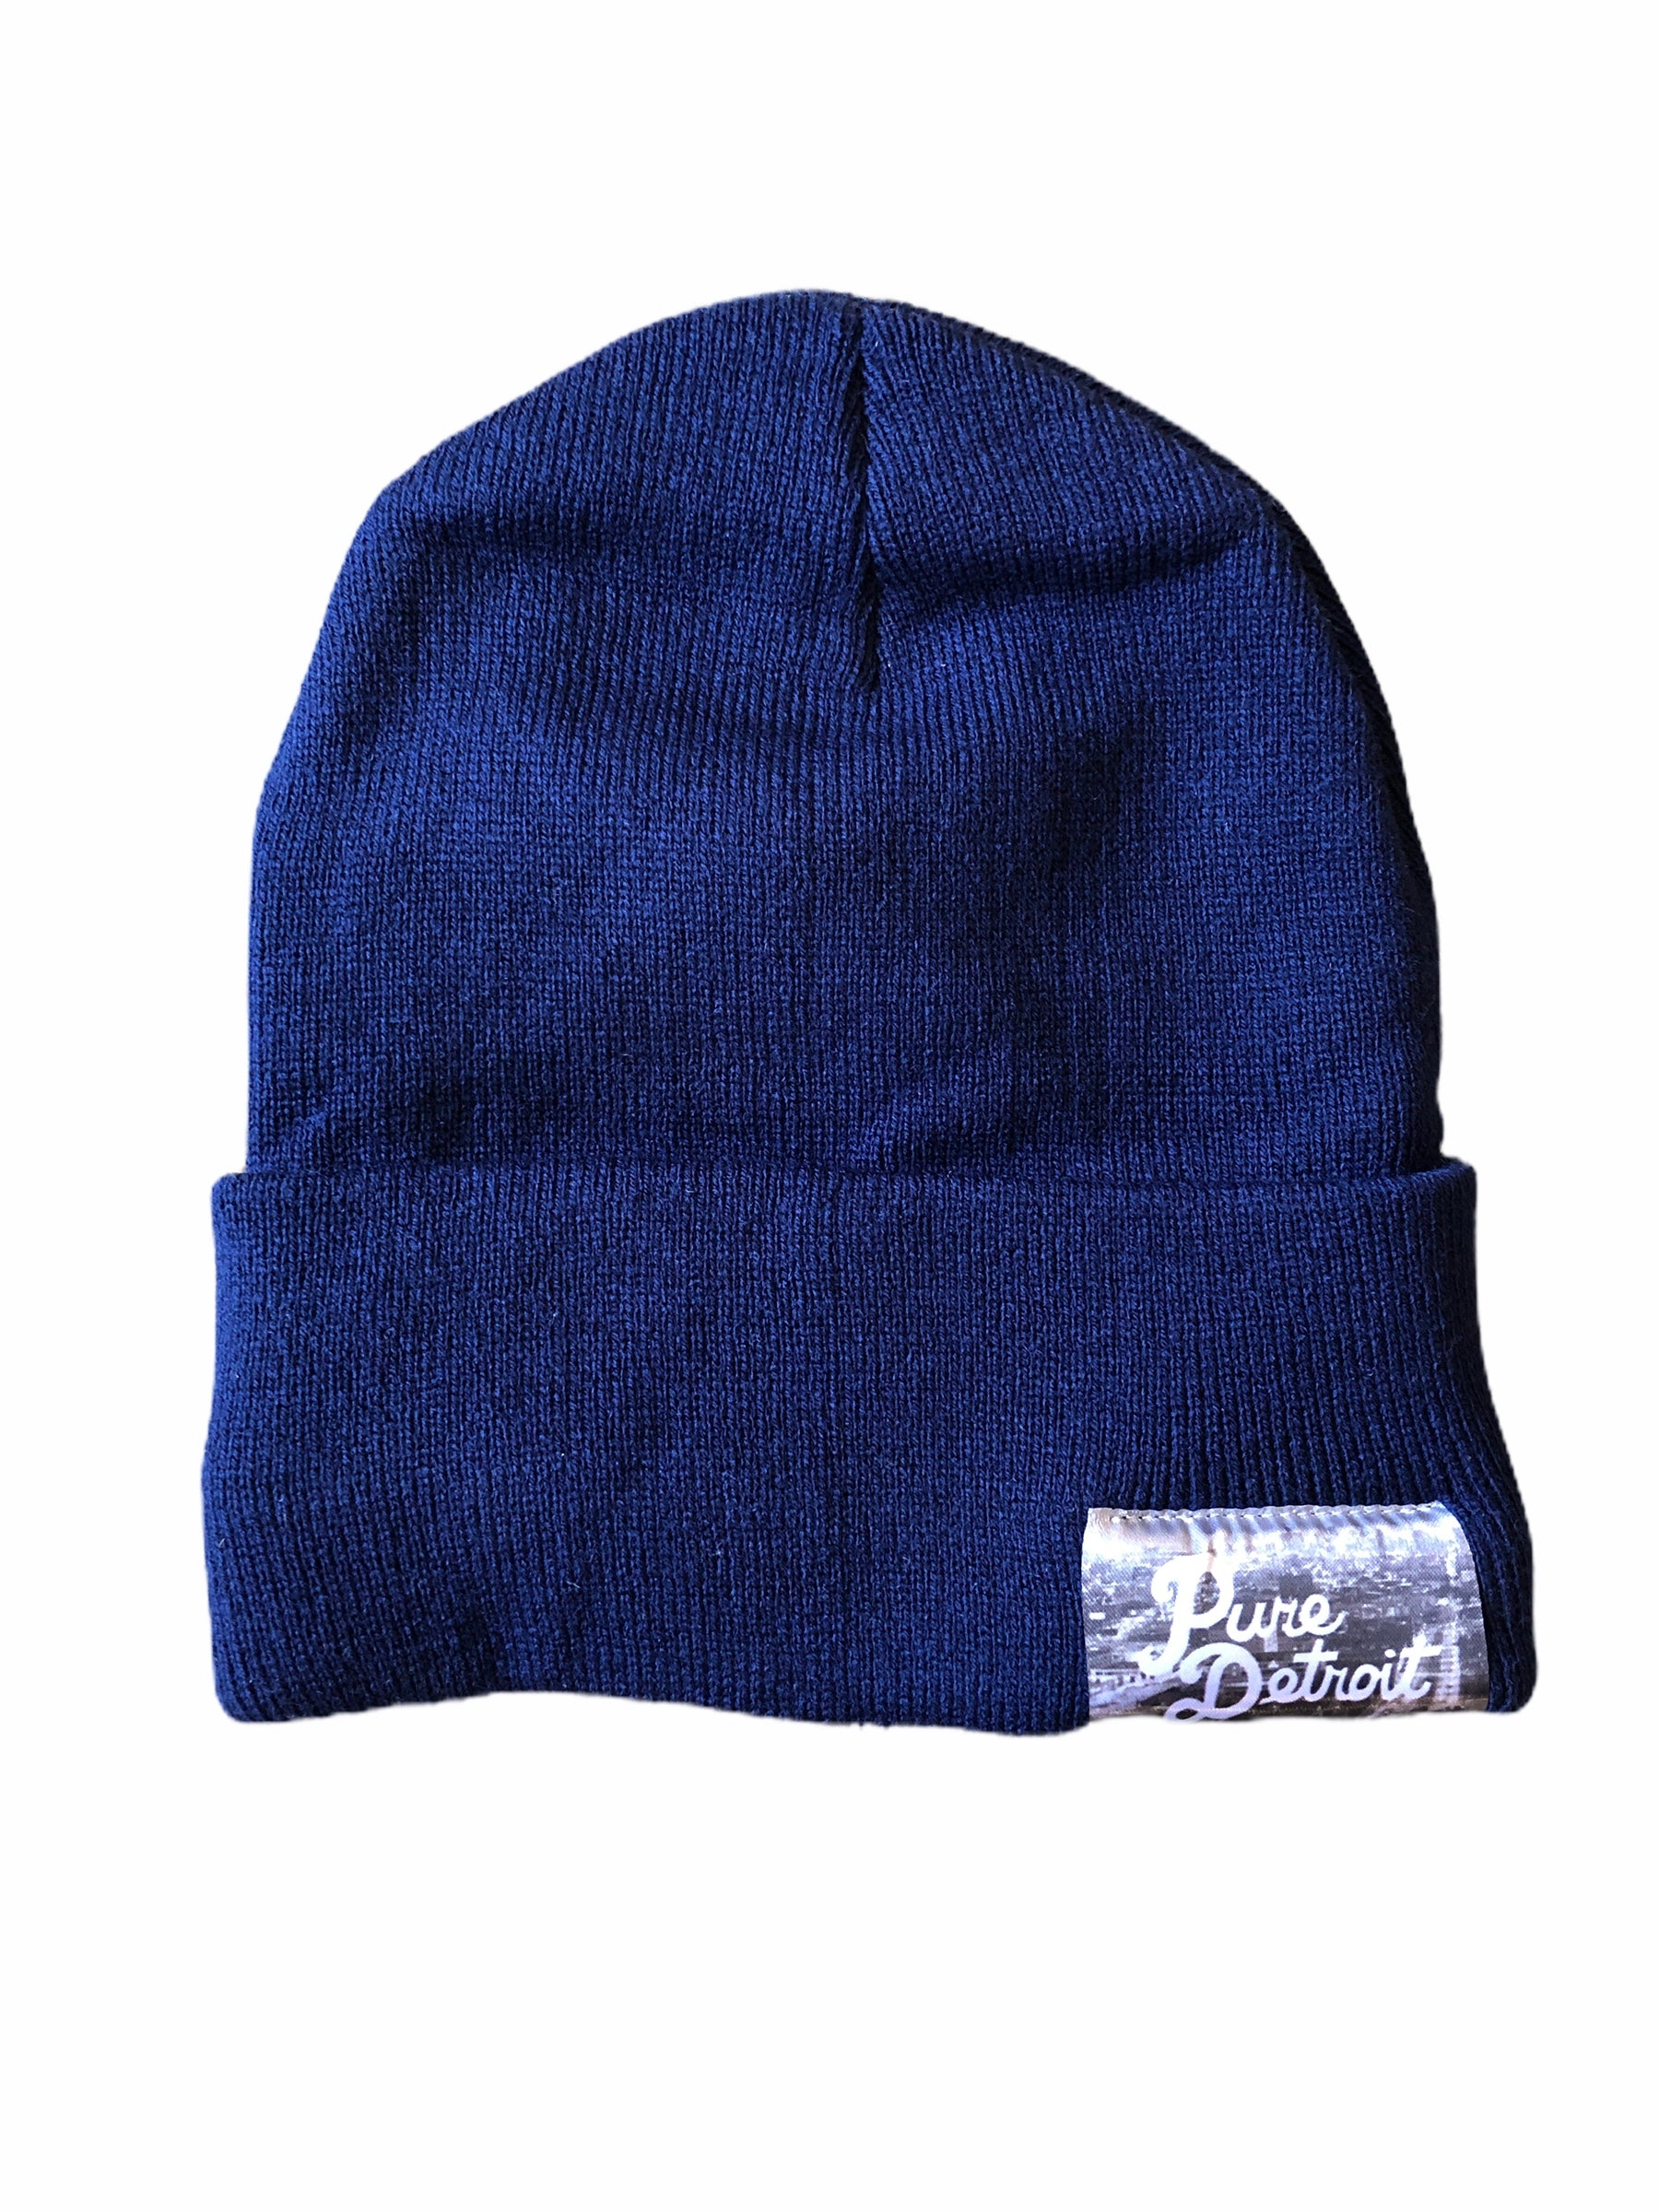 Pure Detroit Cuffed Beanie / Heather Dark Royal - Pure Detroit